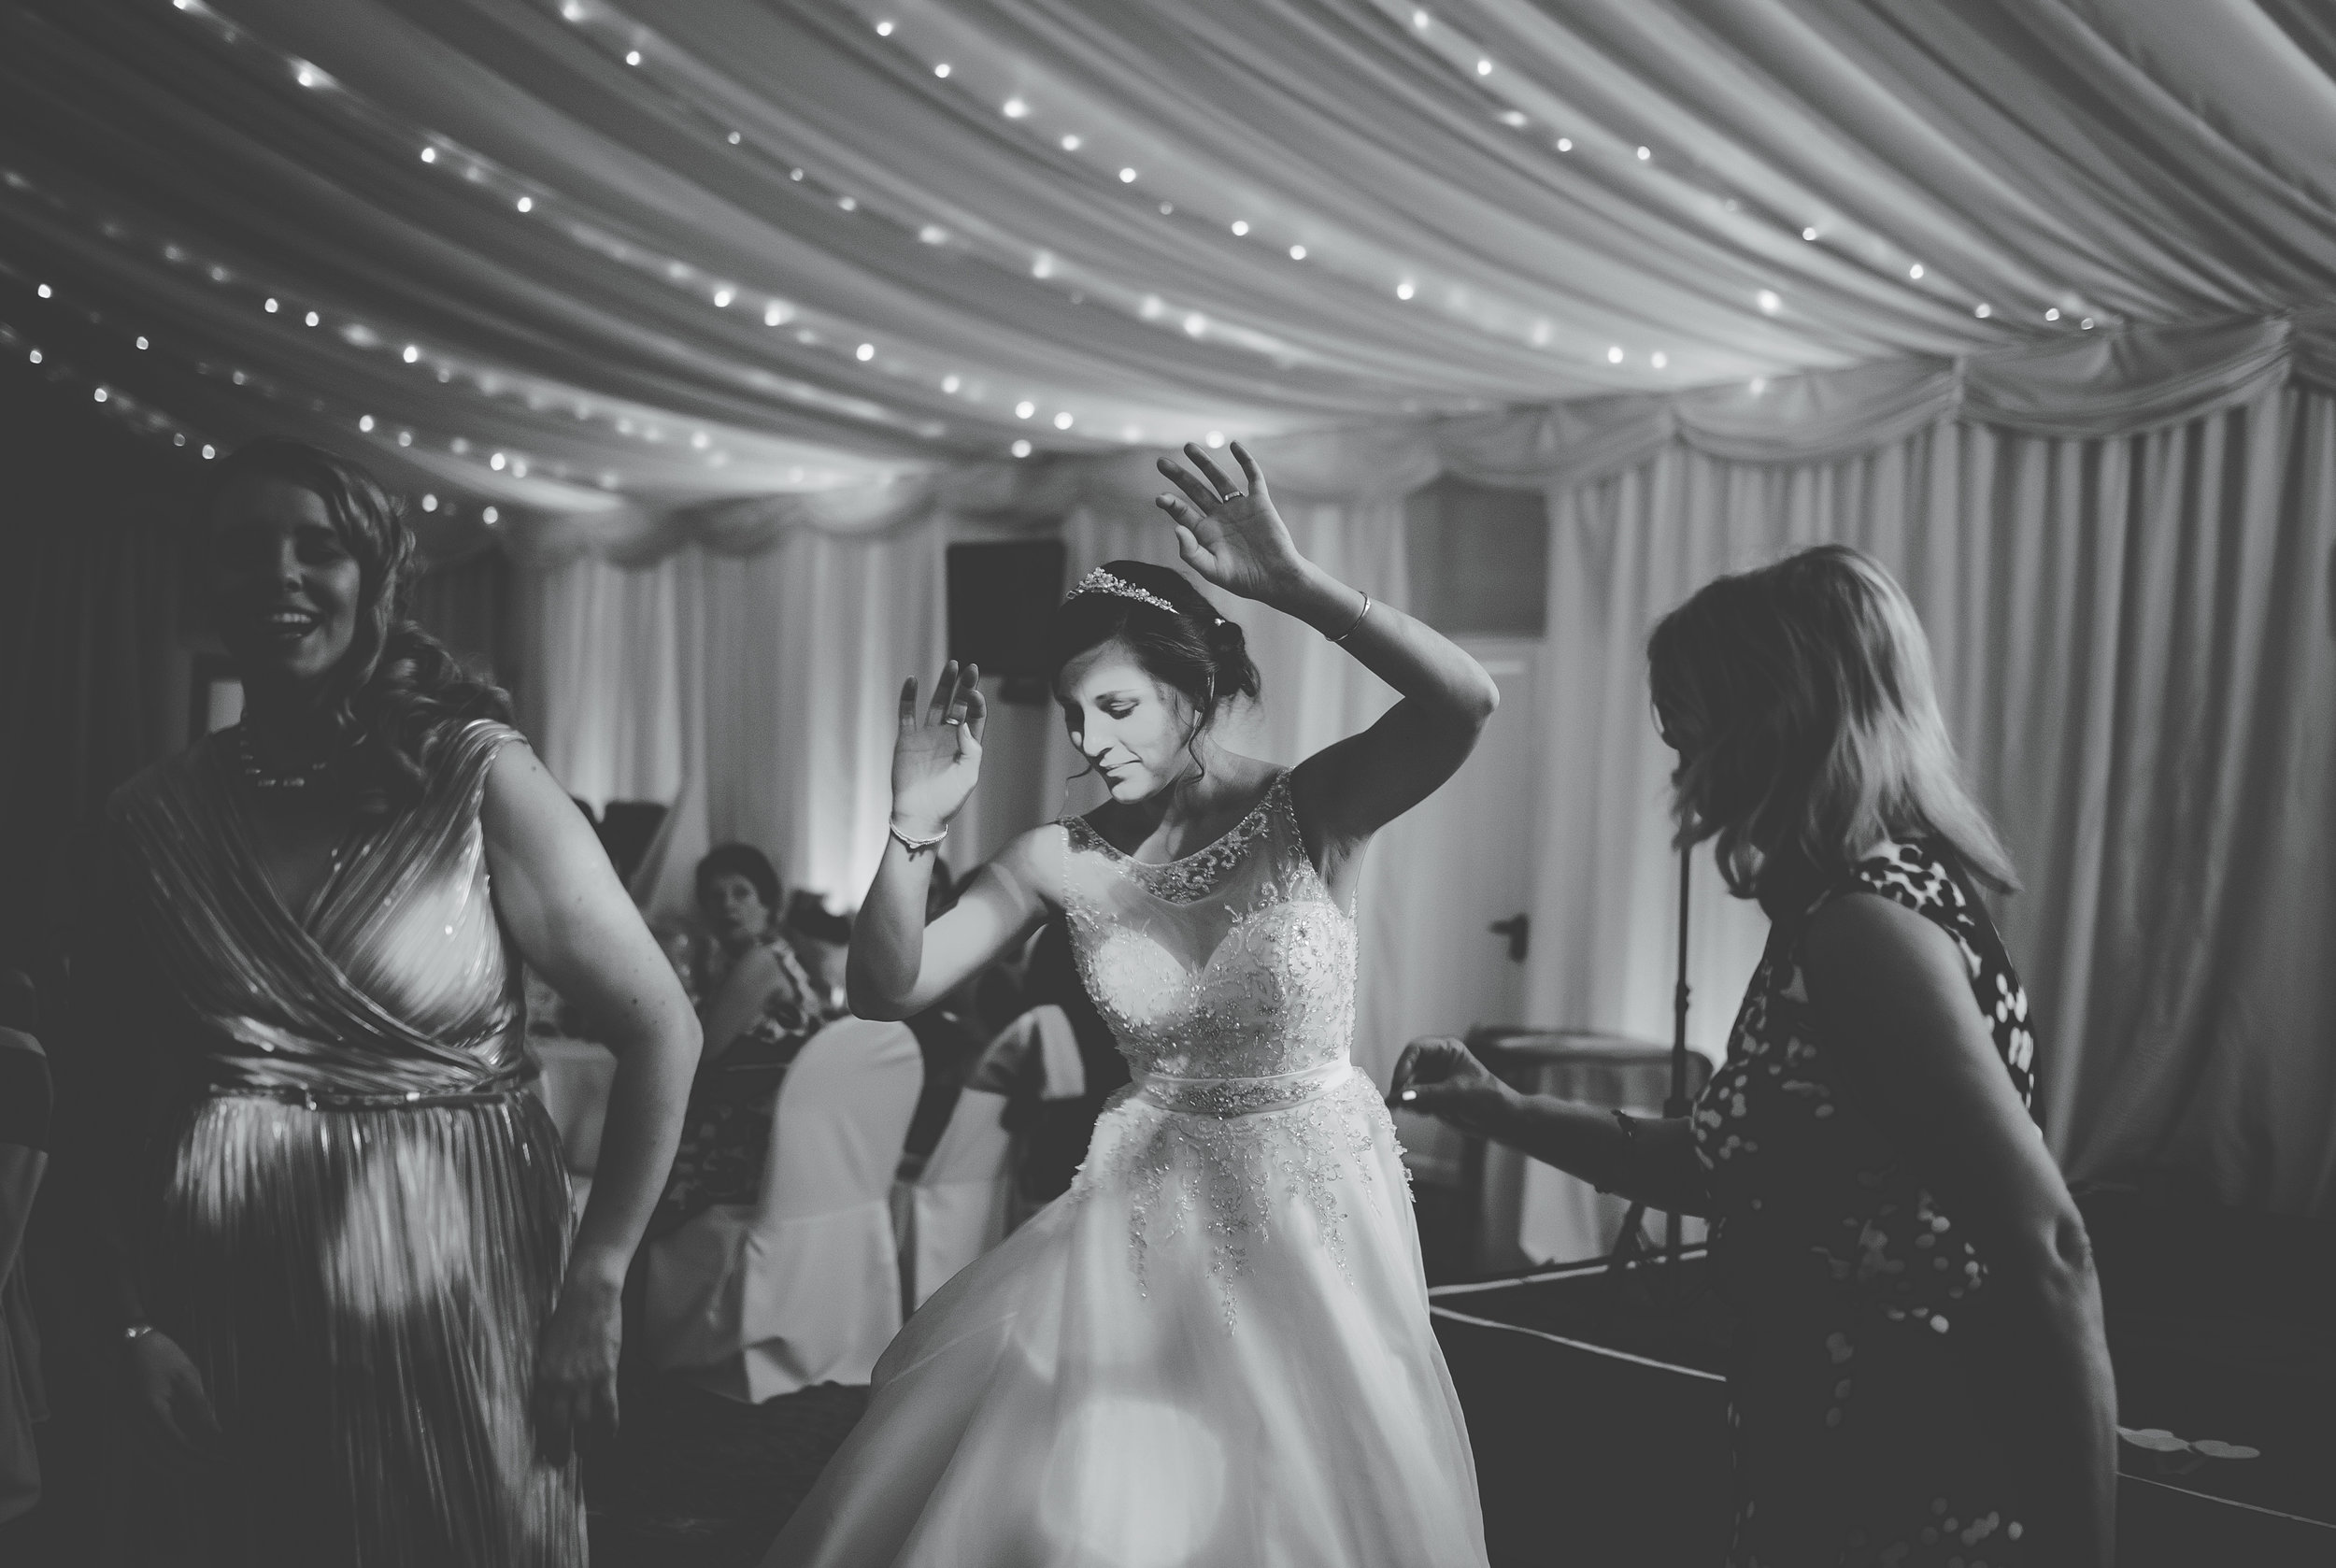 Bride dancing - Villa at Wrea green wedding